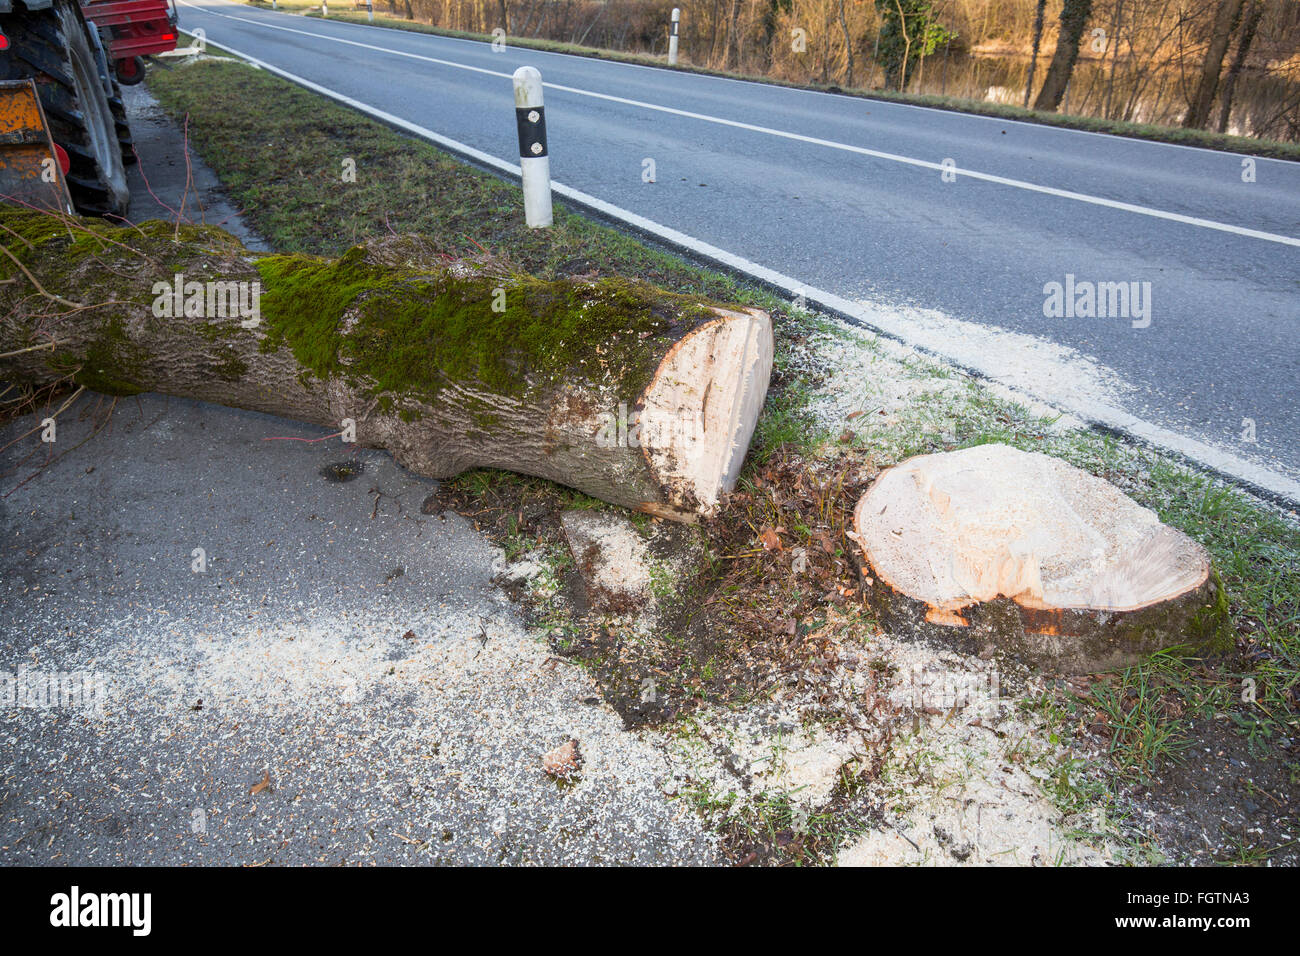 Cutting down a tree, felling a tree along a road, Baum fällen, Baumstamm, tree trunk - Stock Image